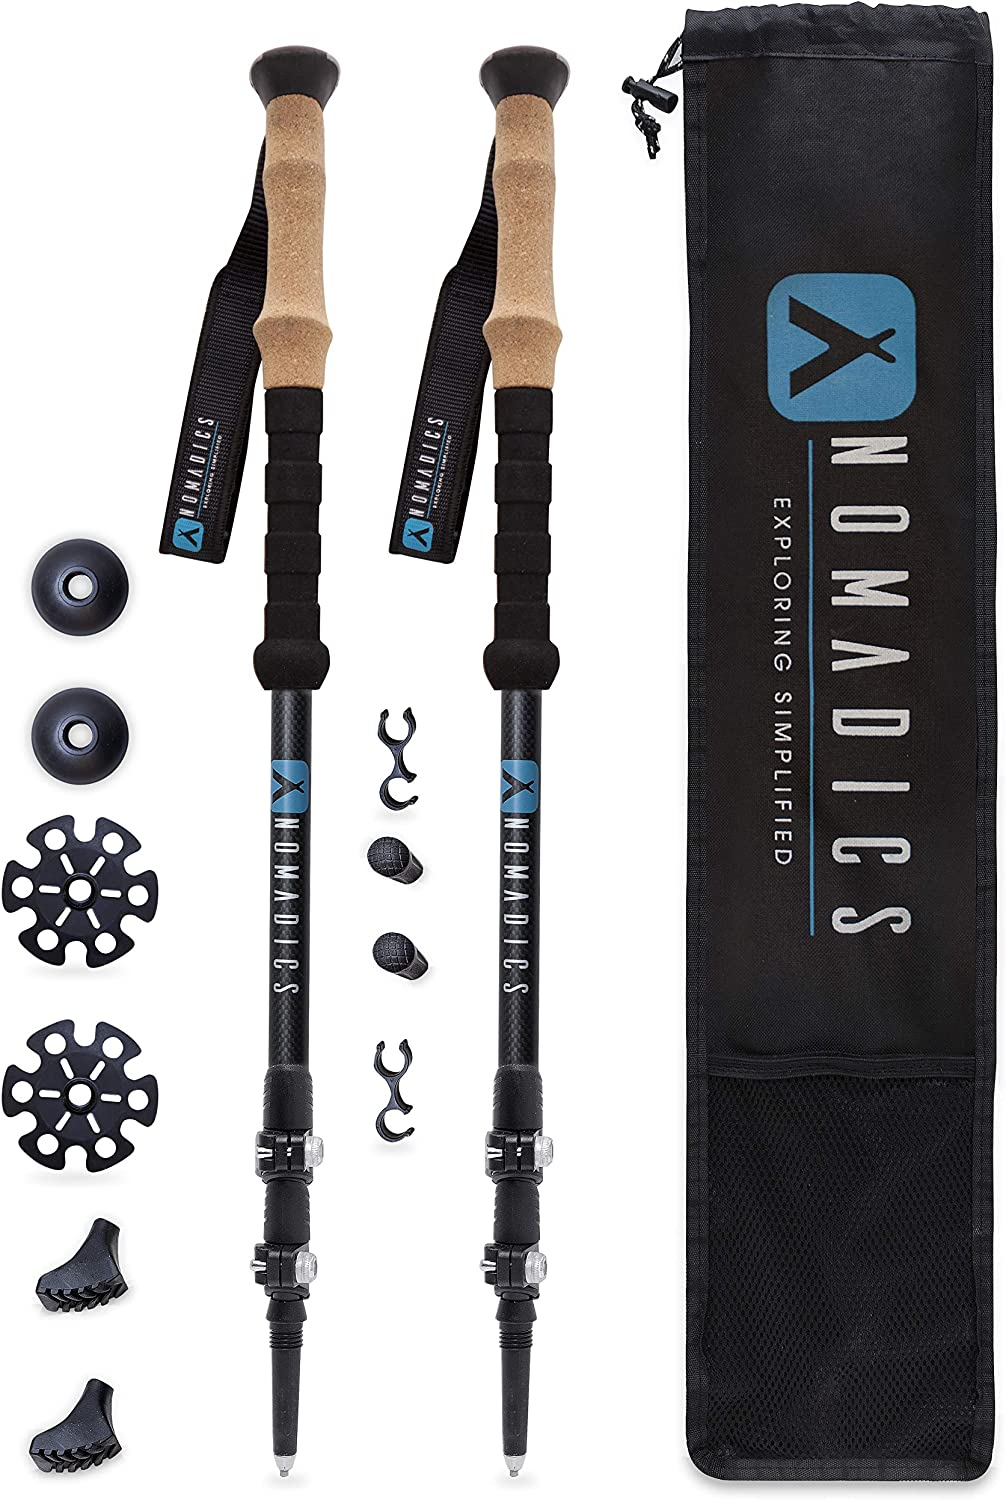 Nomadics Carbon Fiber Trekking Poles Ultra Lightweight, Heavy-Duty, AntiShock Hiking Sticks with Cork Grip Handles – Adjustable from 24 to 54 – Travel Bag and Replaceable Feet